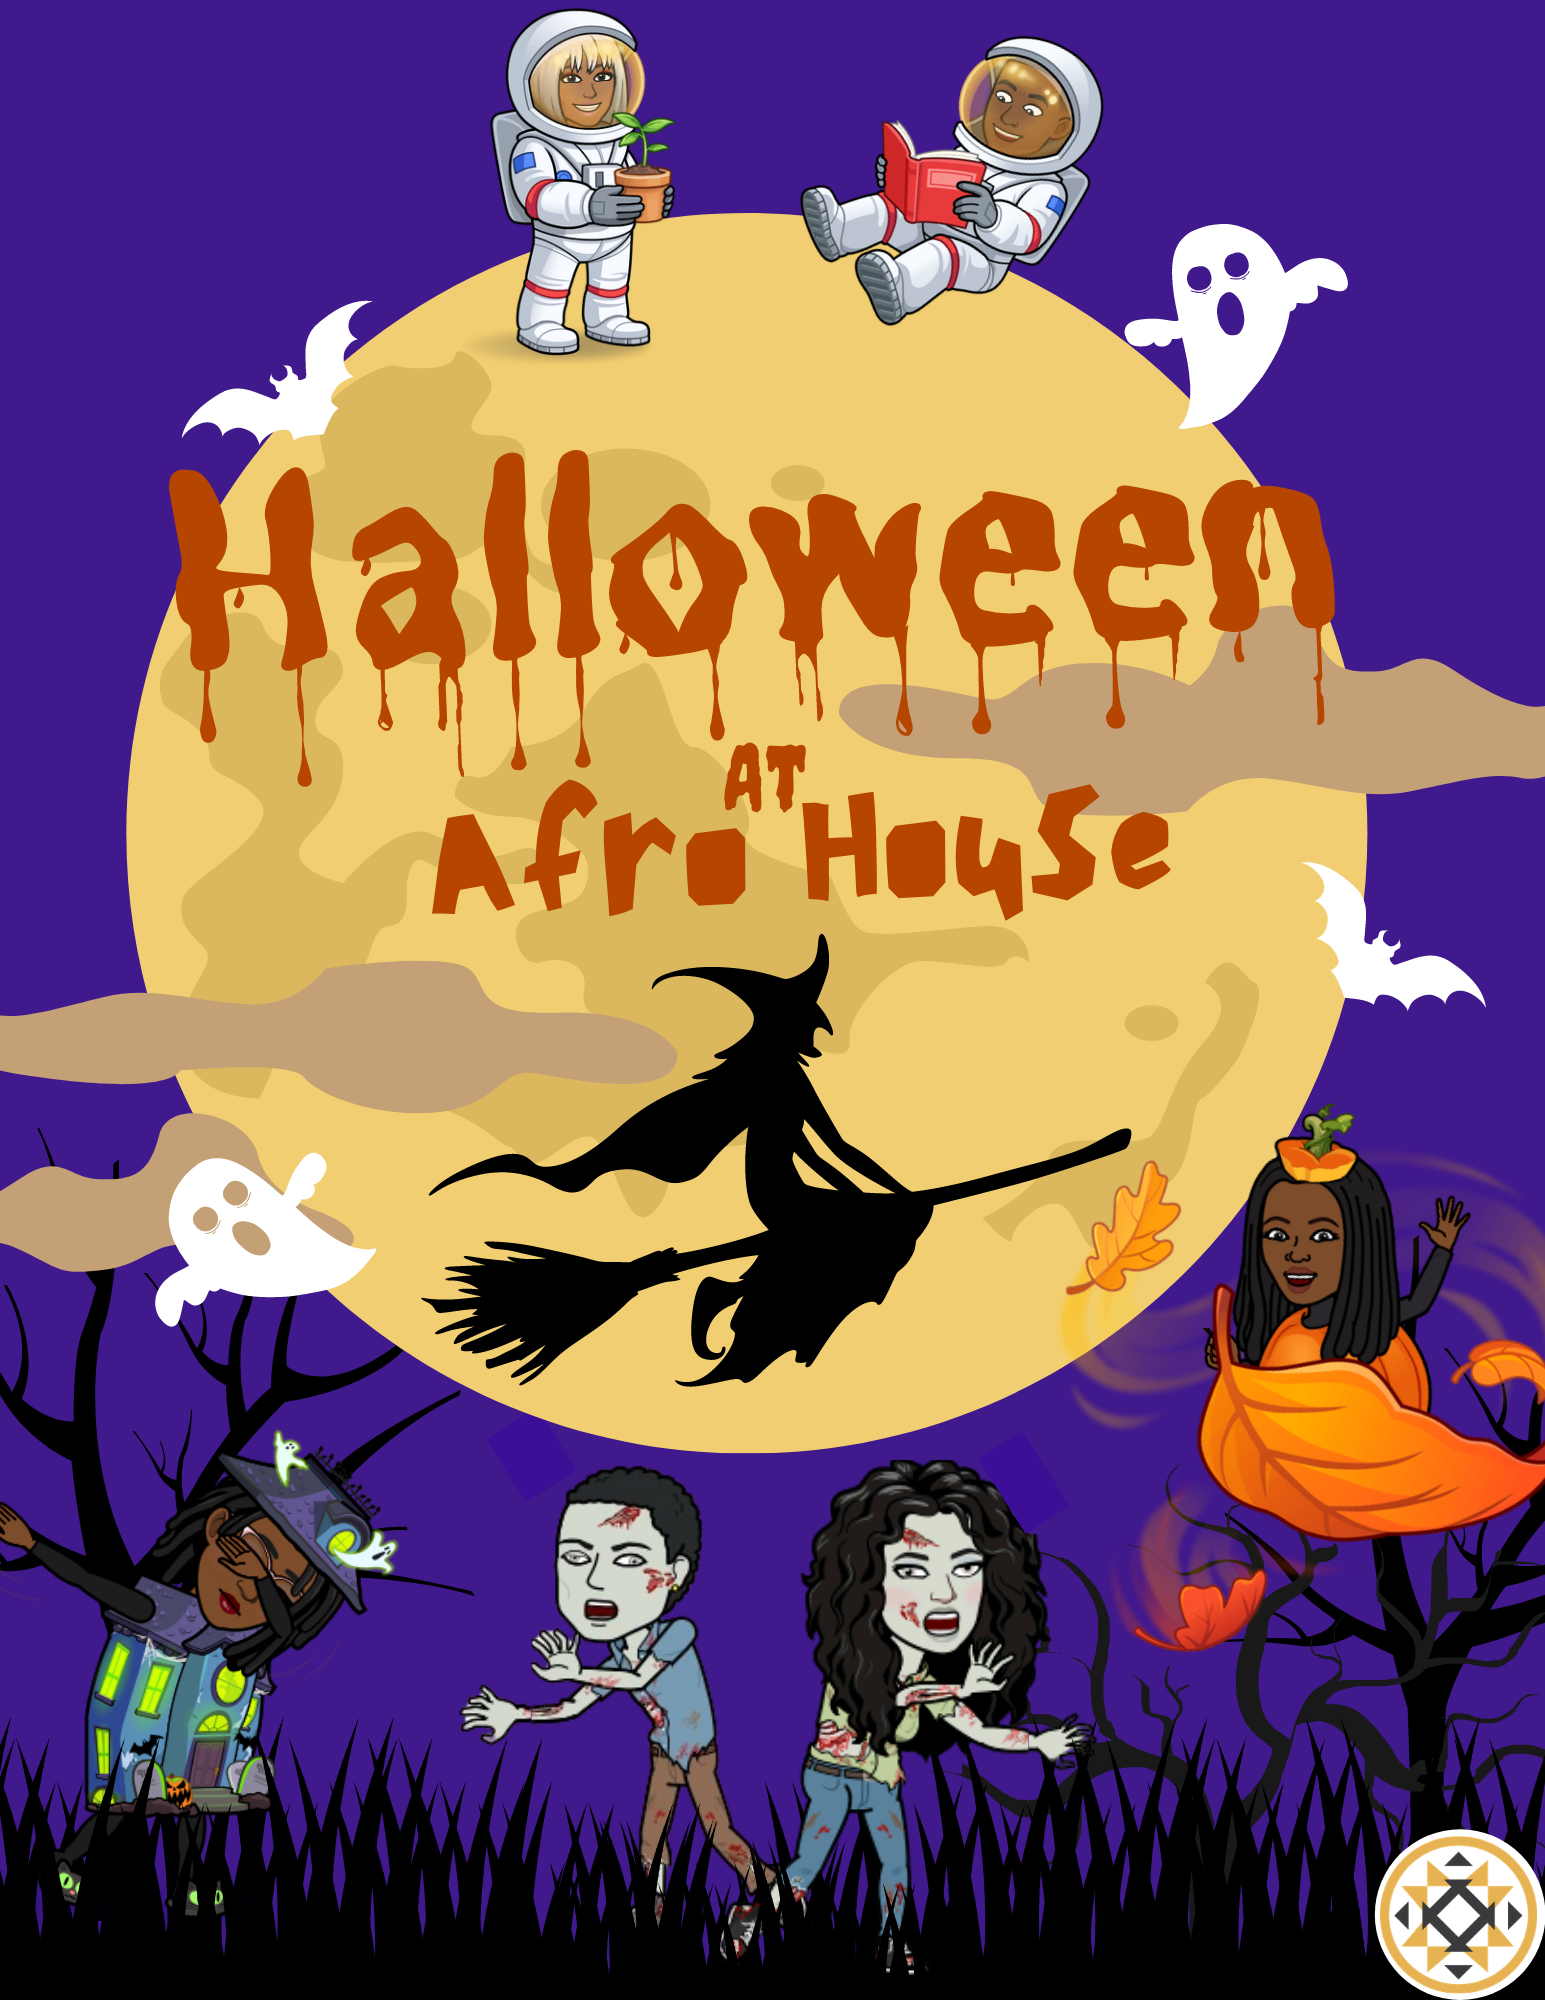 Halloween at Afro House